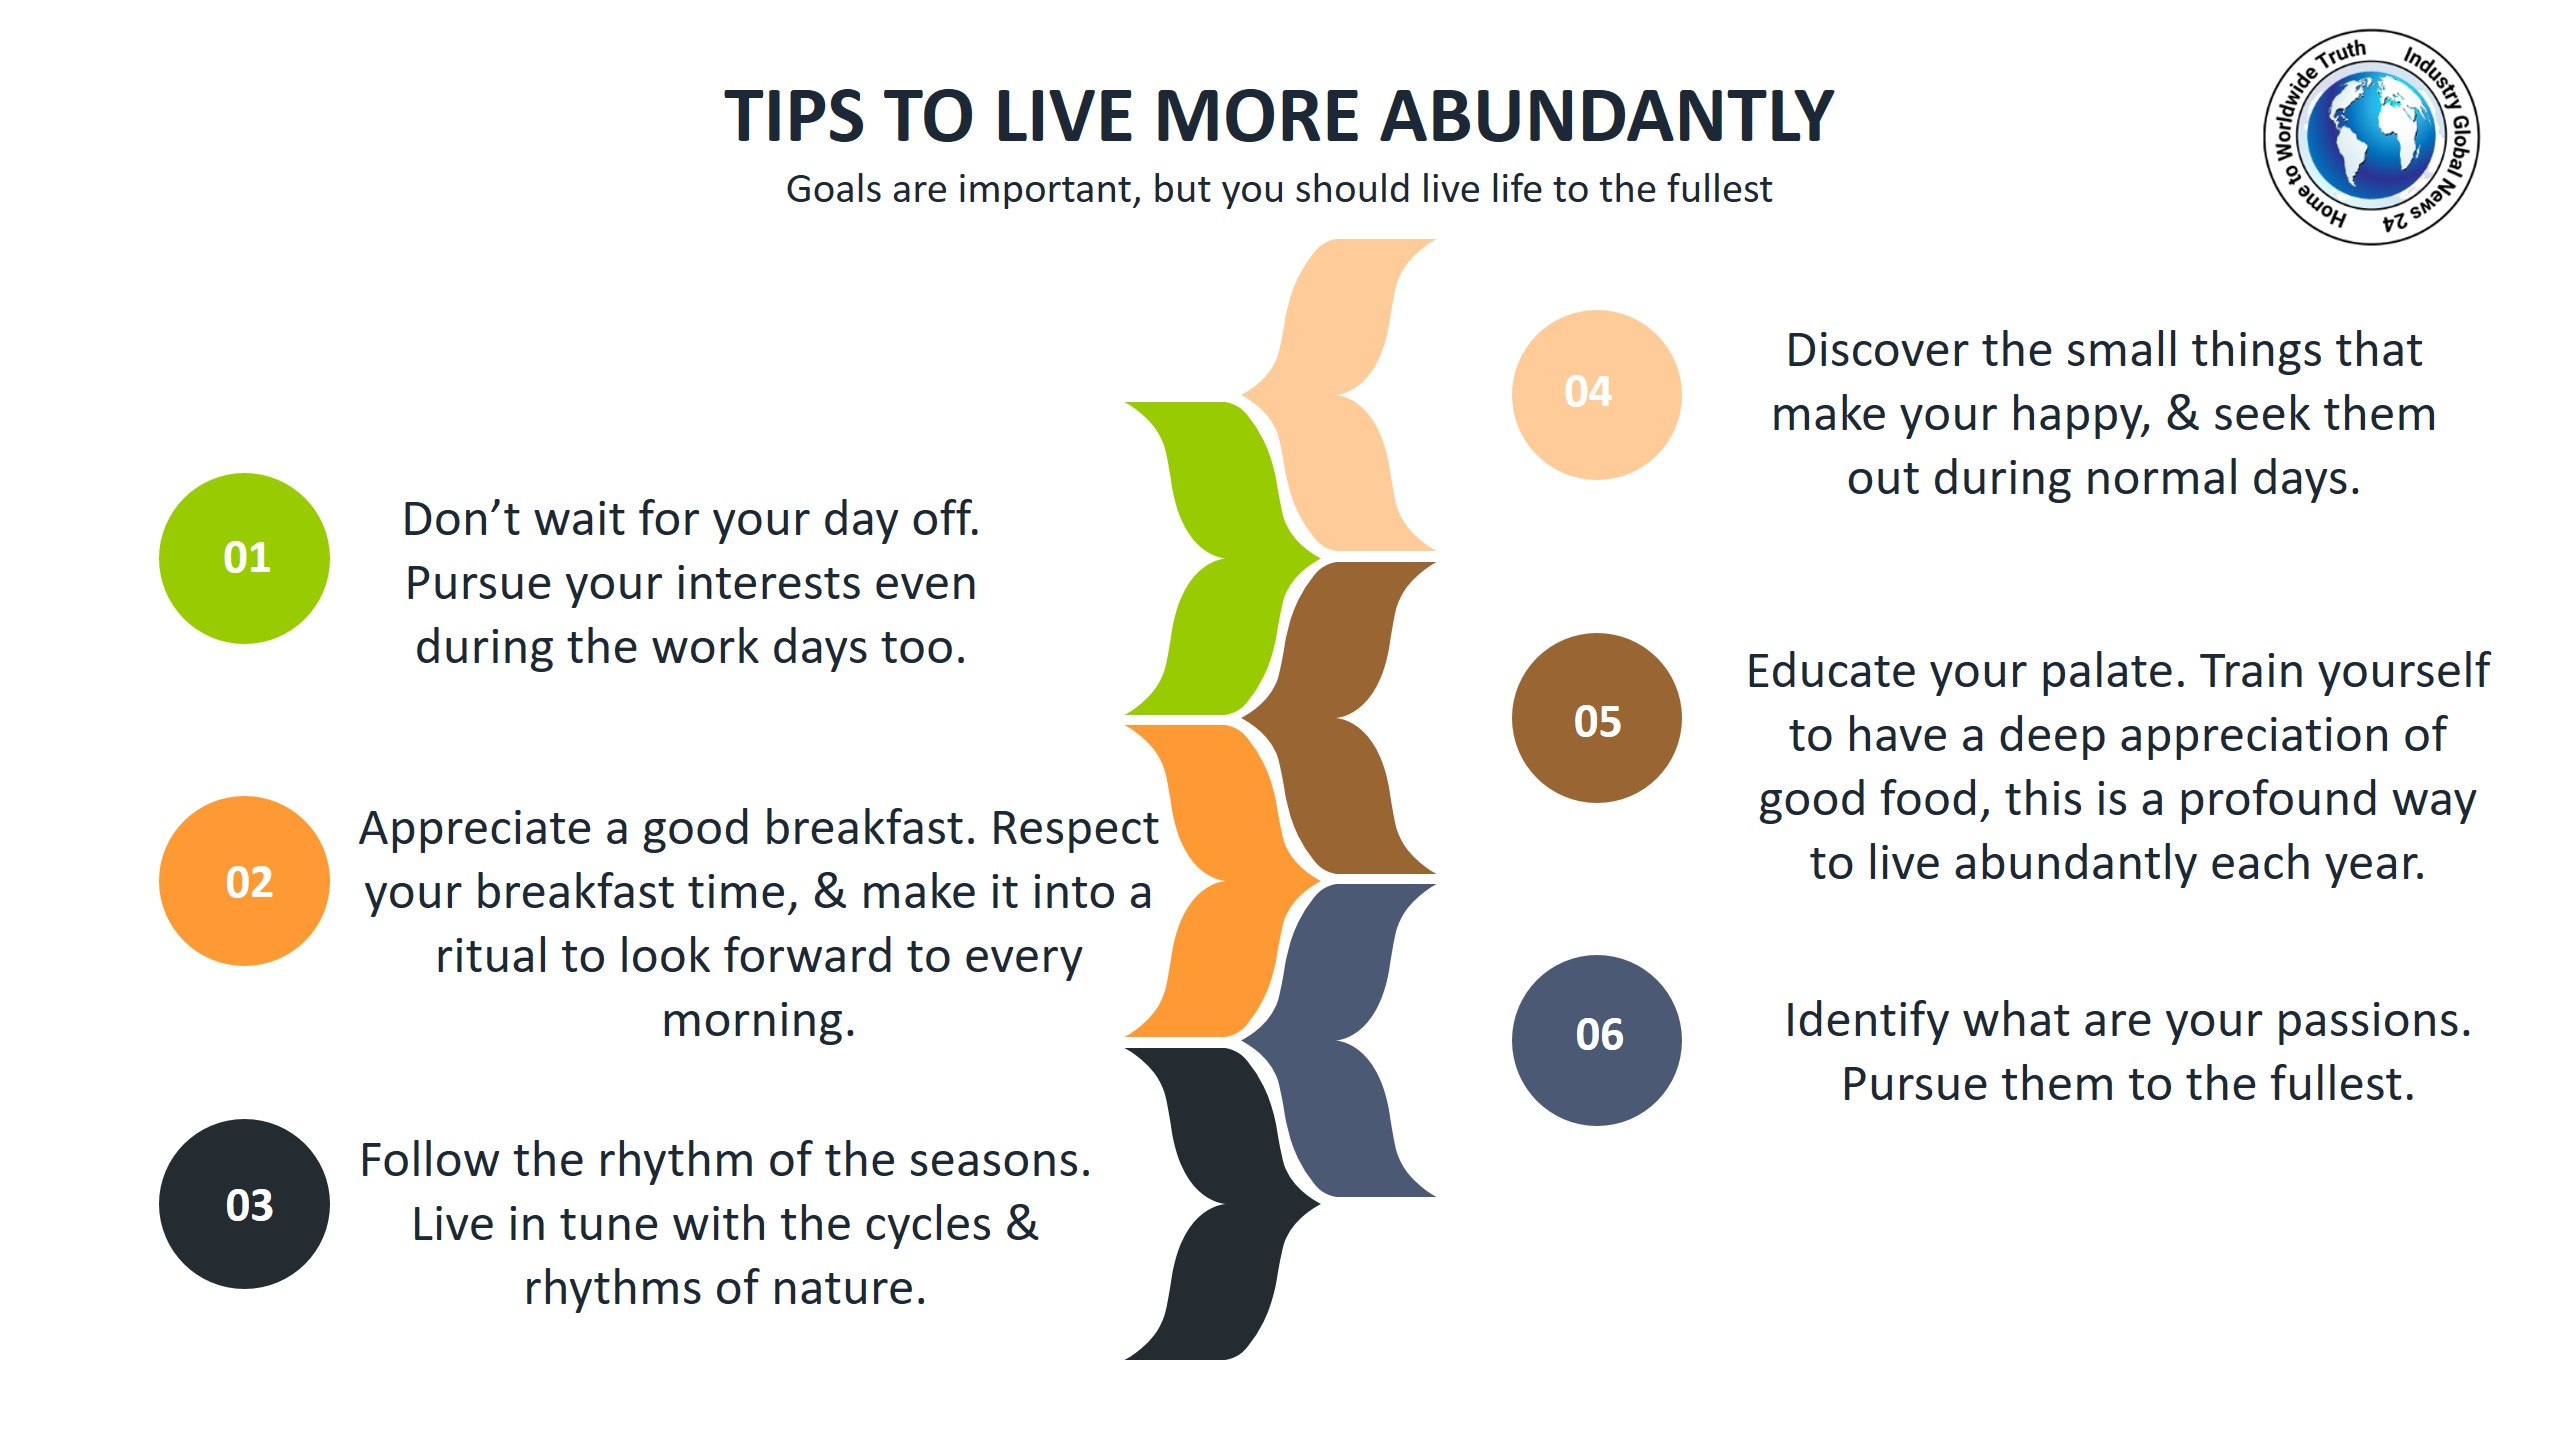 Tips to live more abundantly